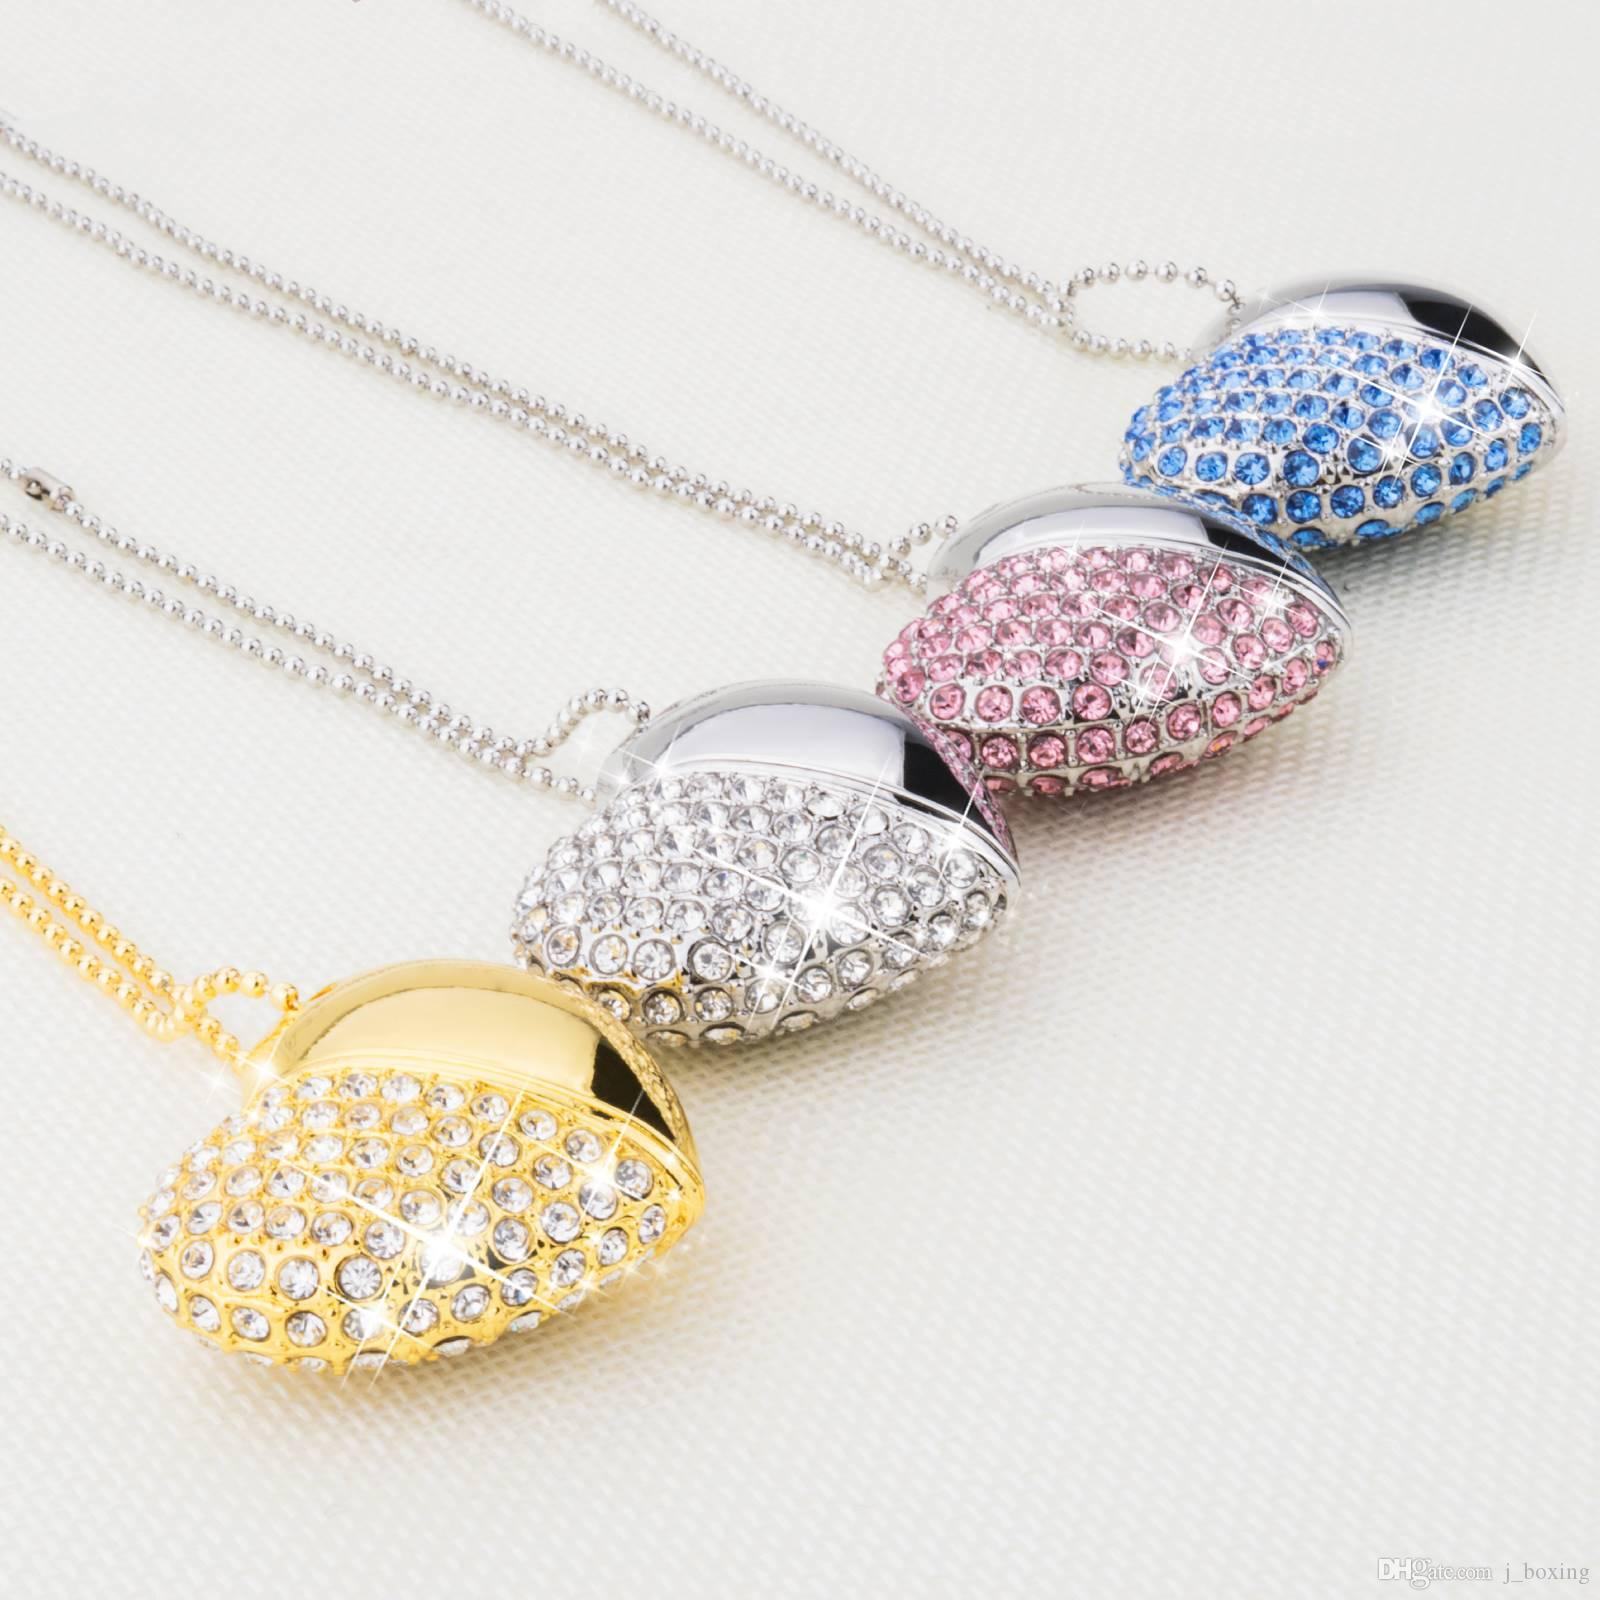 Crystal Heart Design 16GB USB 2.0 Flash Drives Enough Memory Sticks Flash Pen Drive for Computer Laptop Mac Tablet Multicolor Free Shipping